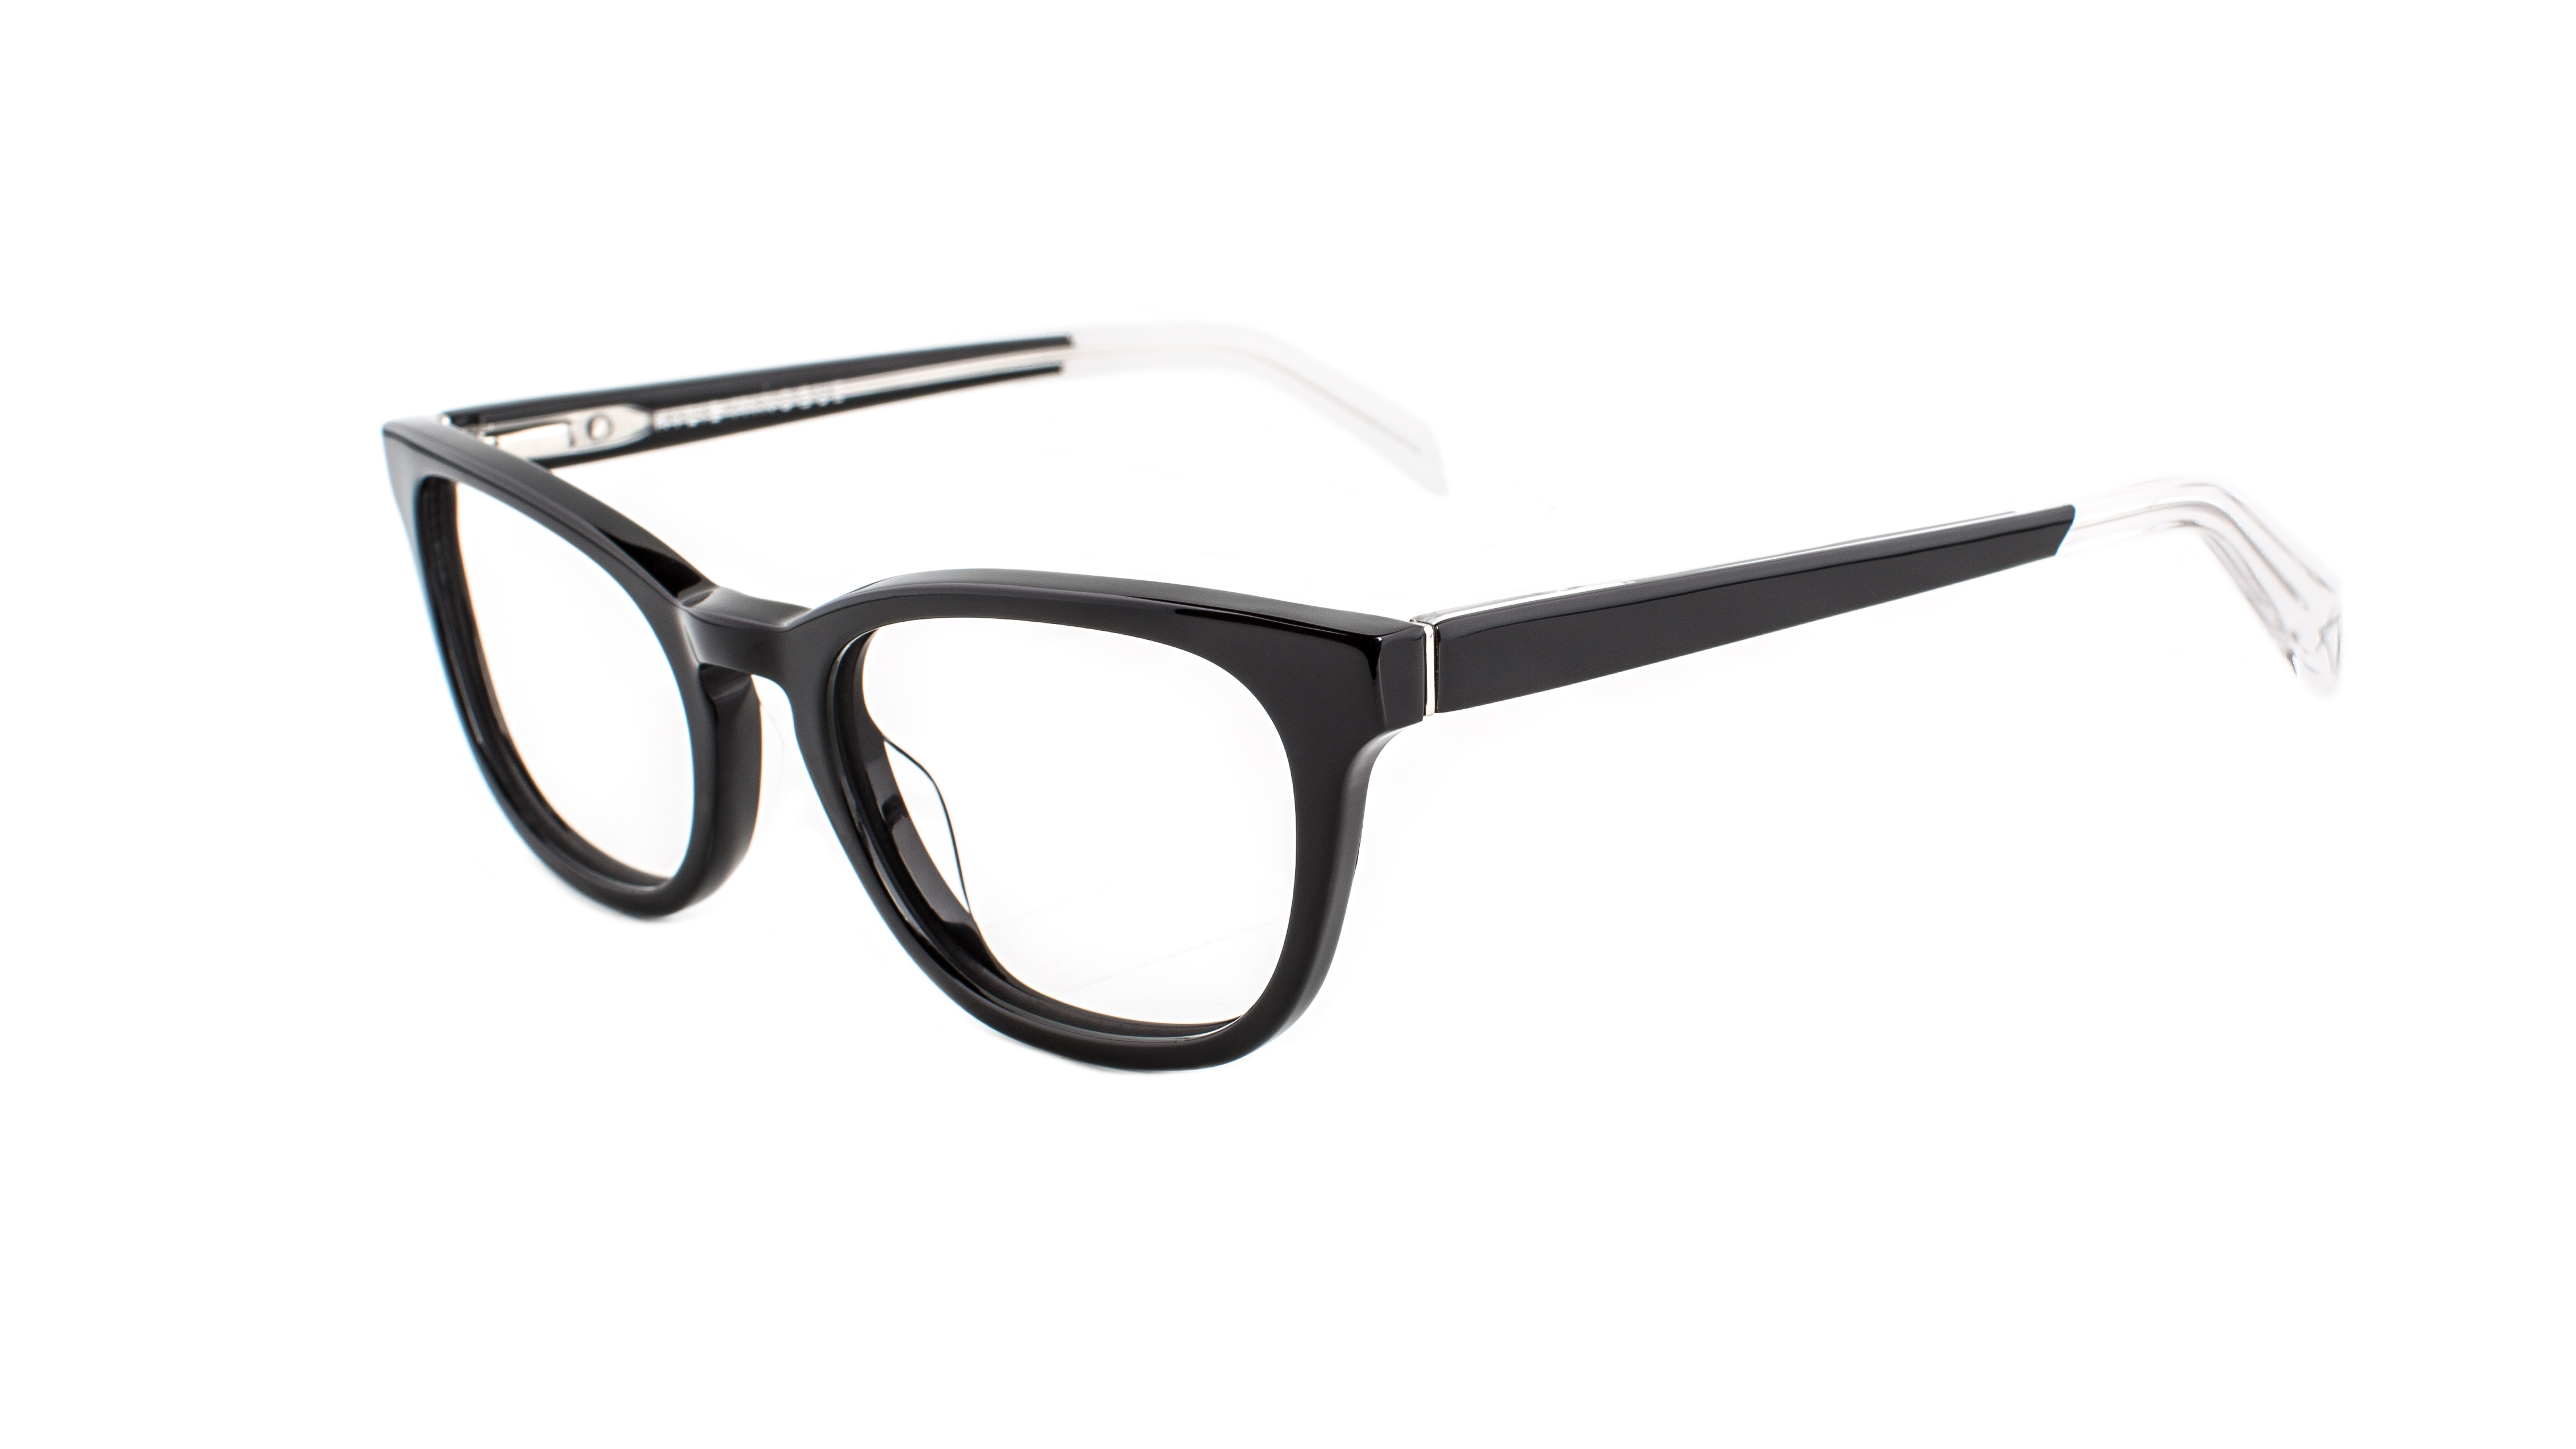 Kylie Minogue Eyewear_Kylie 14_SKU 30520318_RRP 2 pairs from $369 (2)